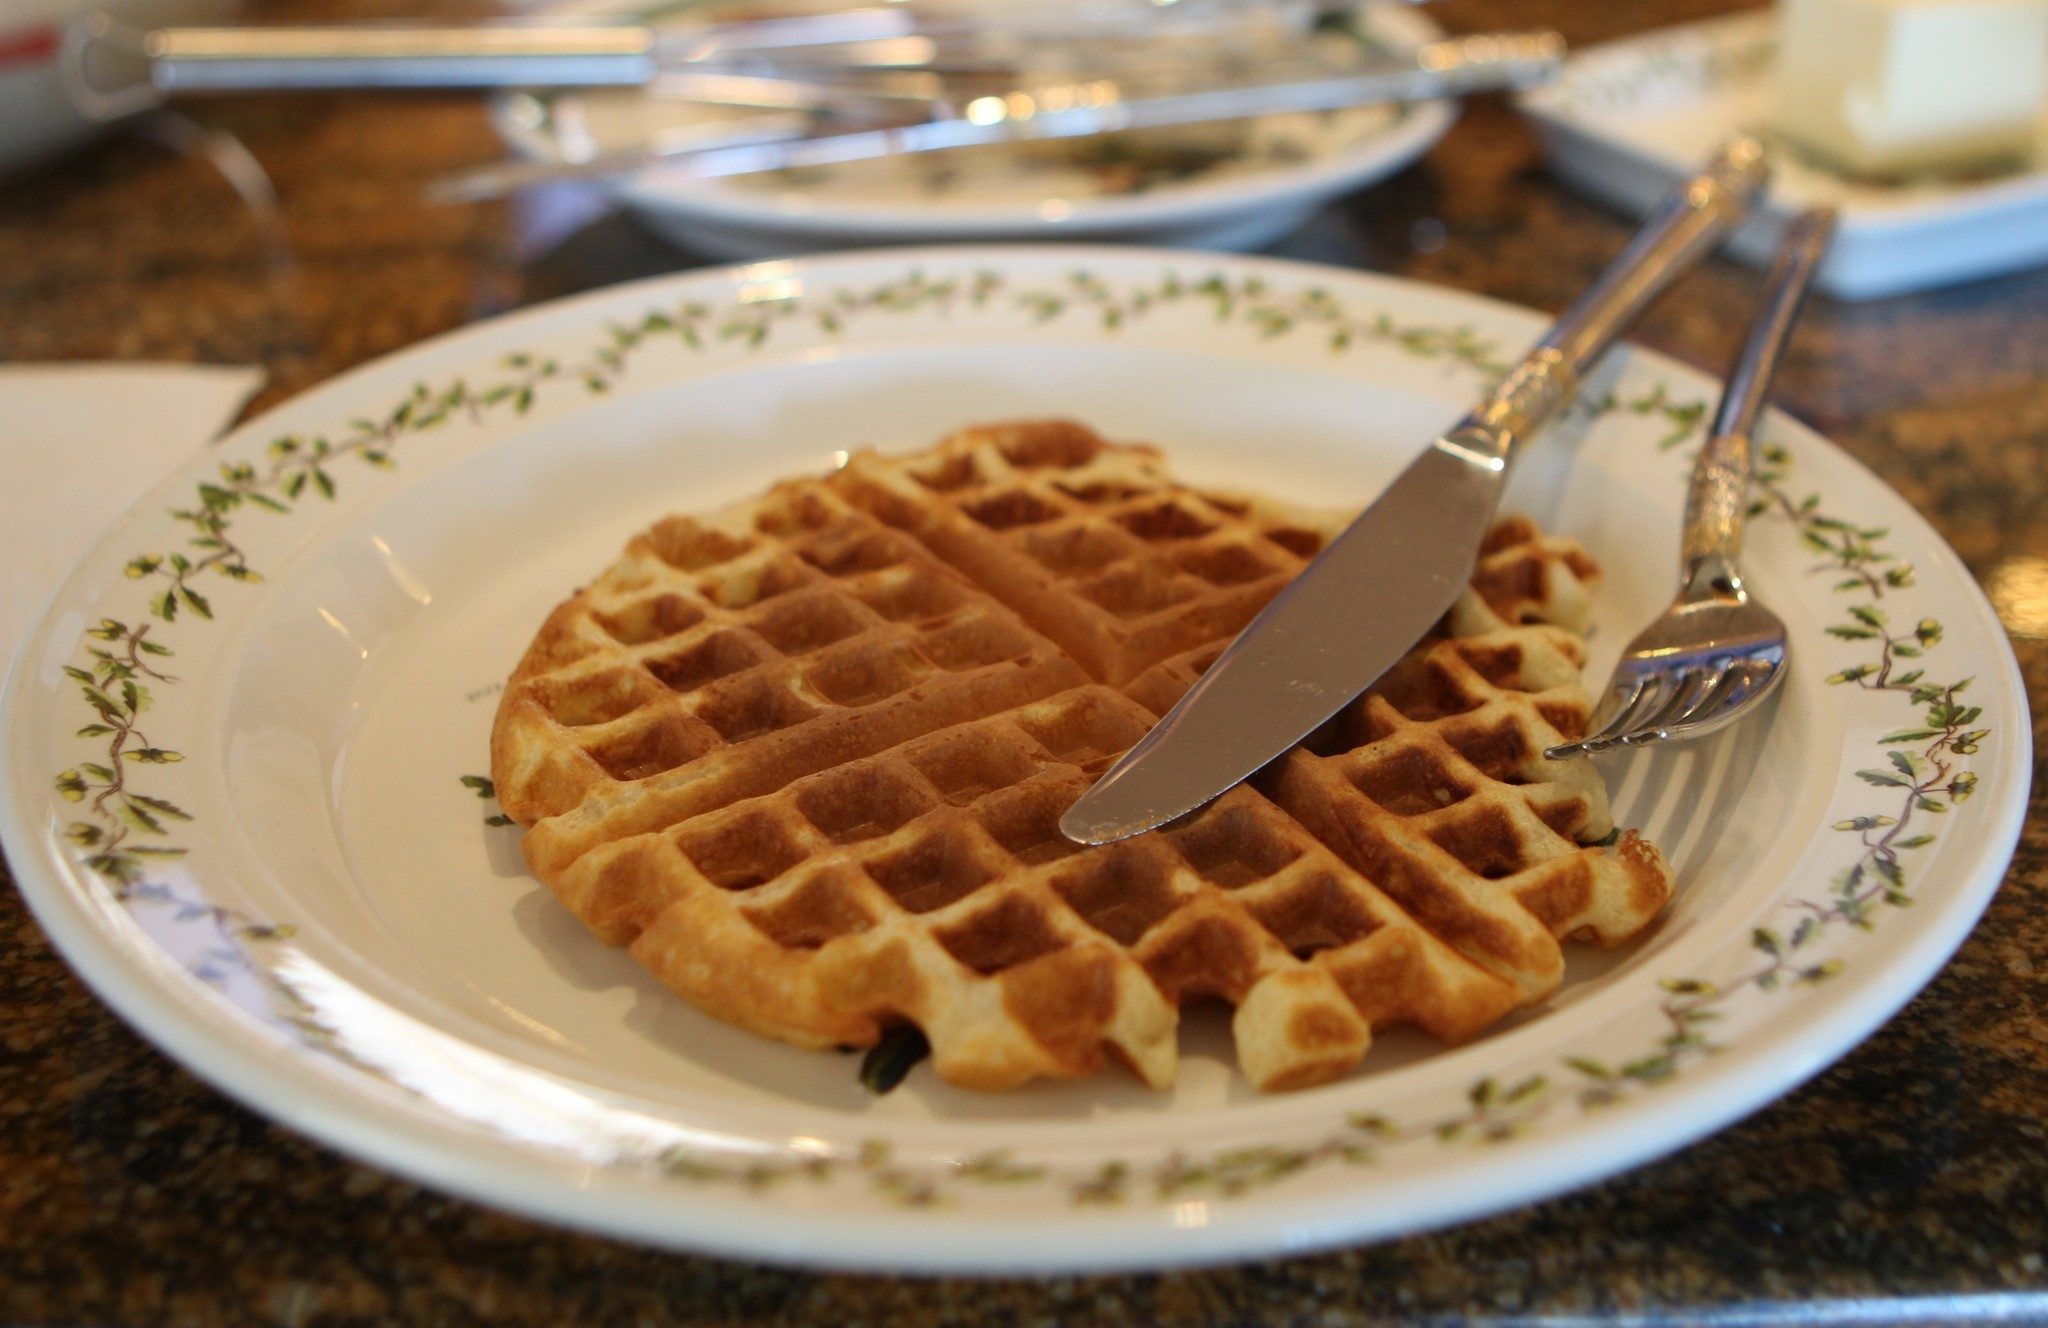 The waffle as envisioned by the waffle master's son